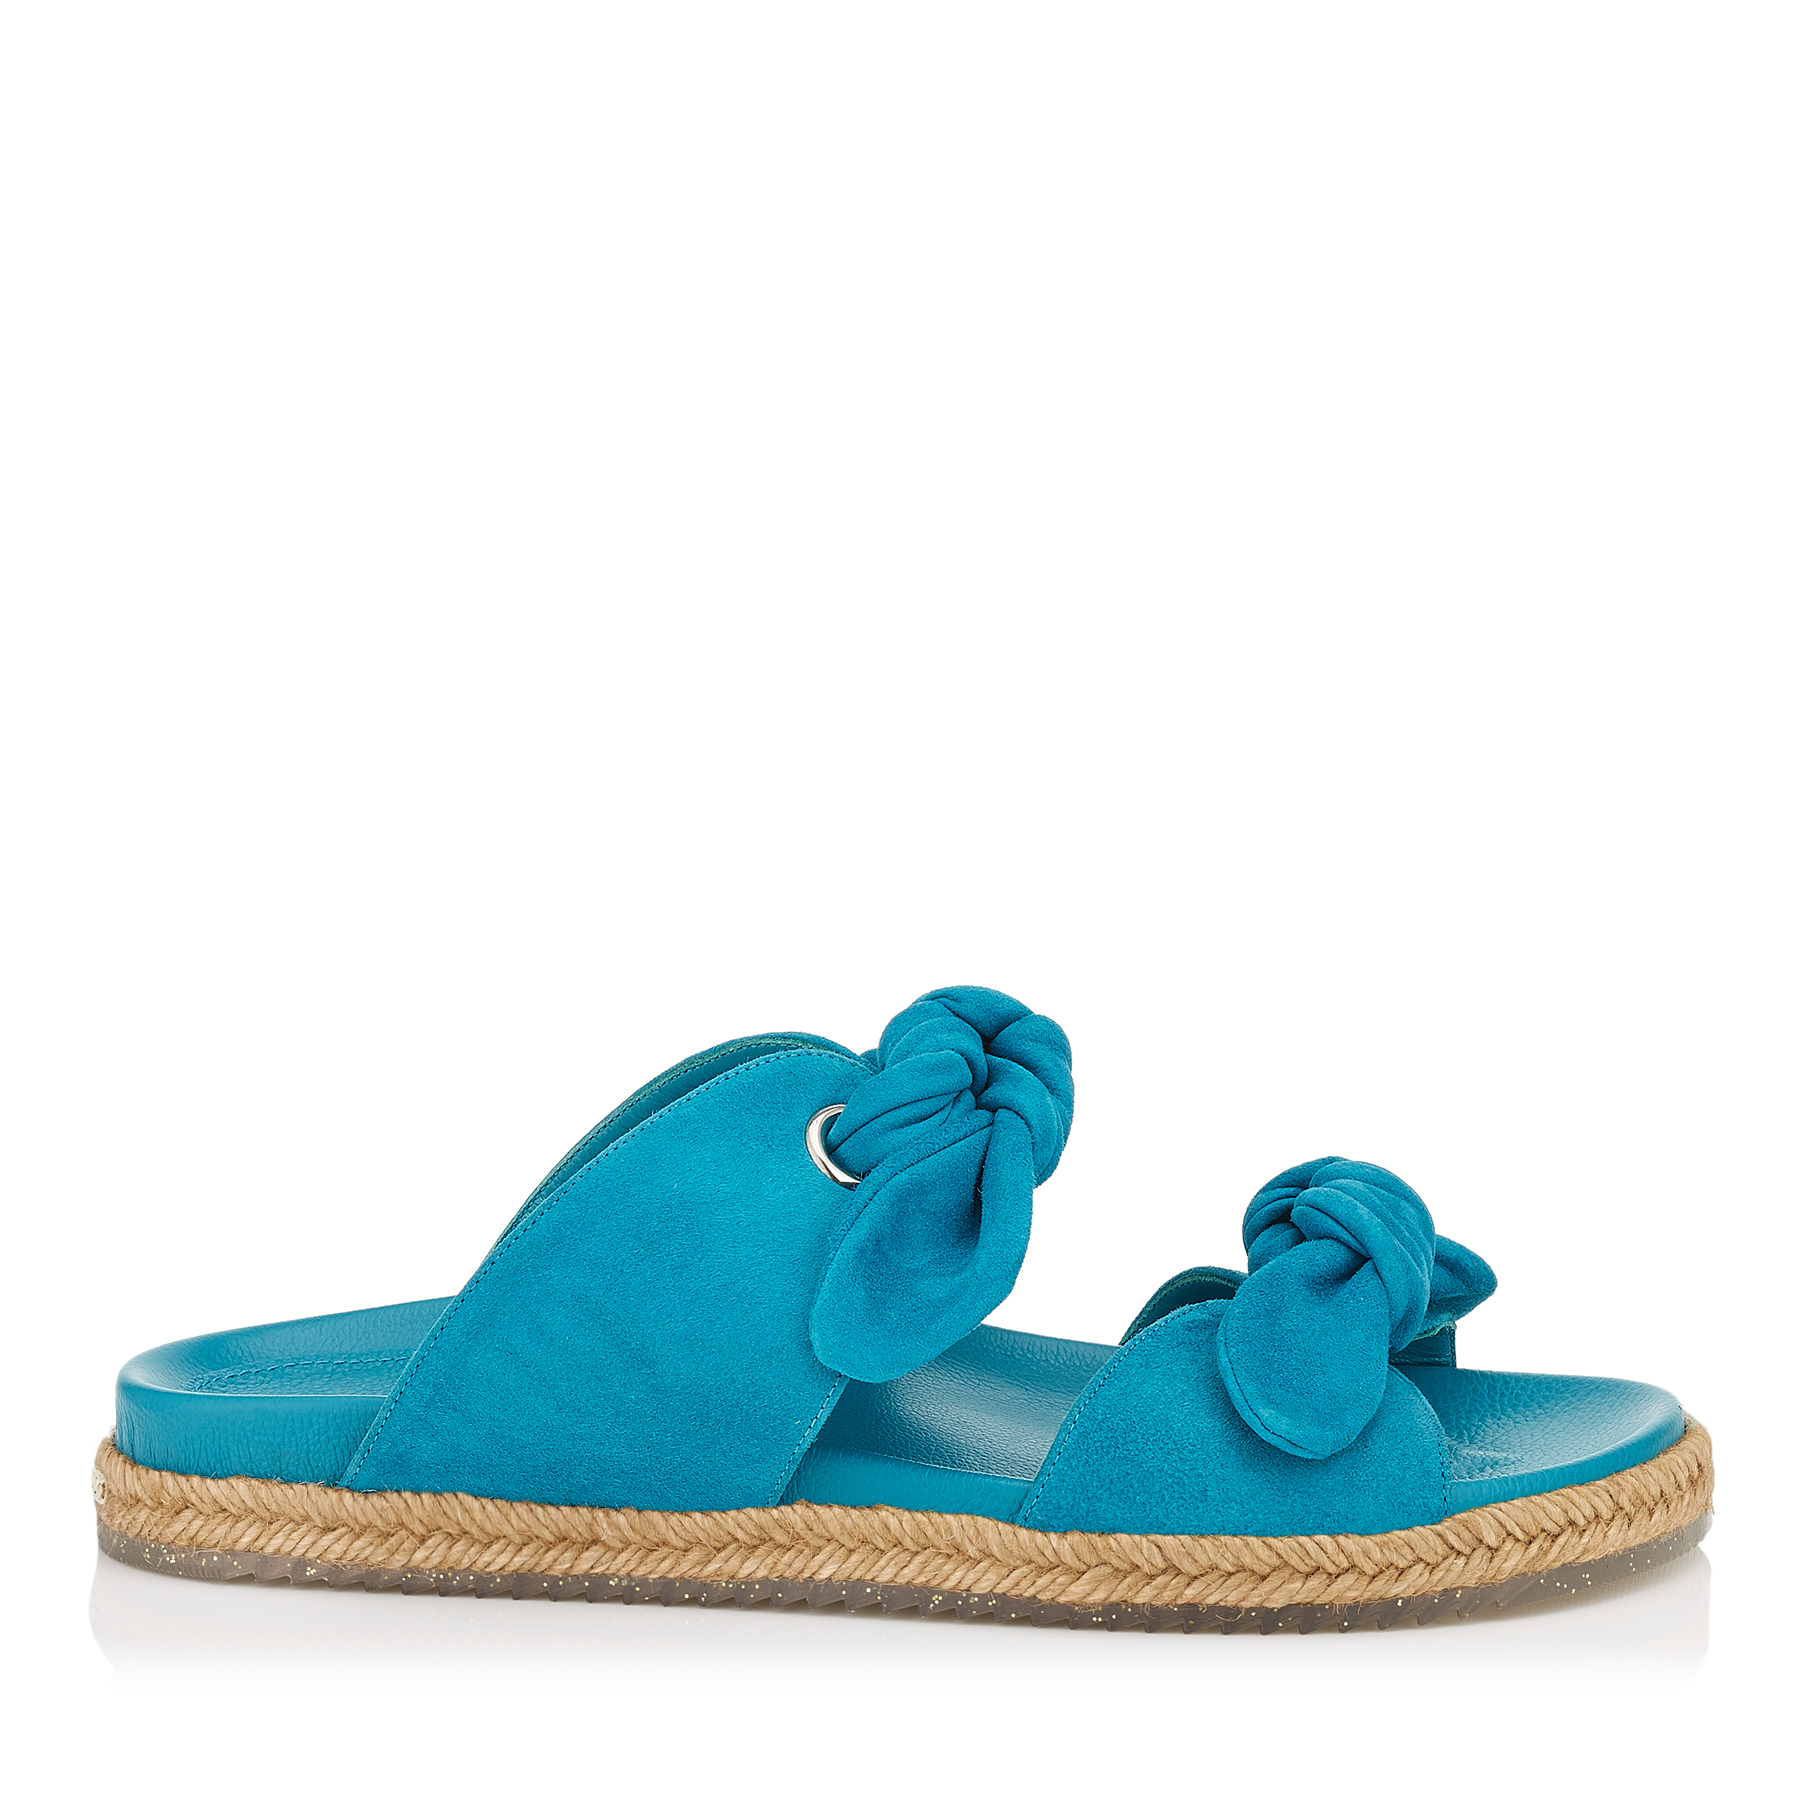 NIXON FLAT Roman Blue Suede Slip On Sandal by Jimmy Choo